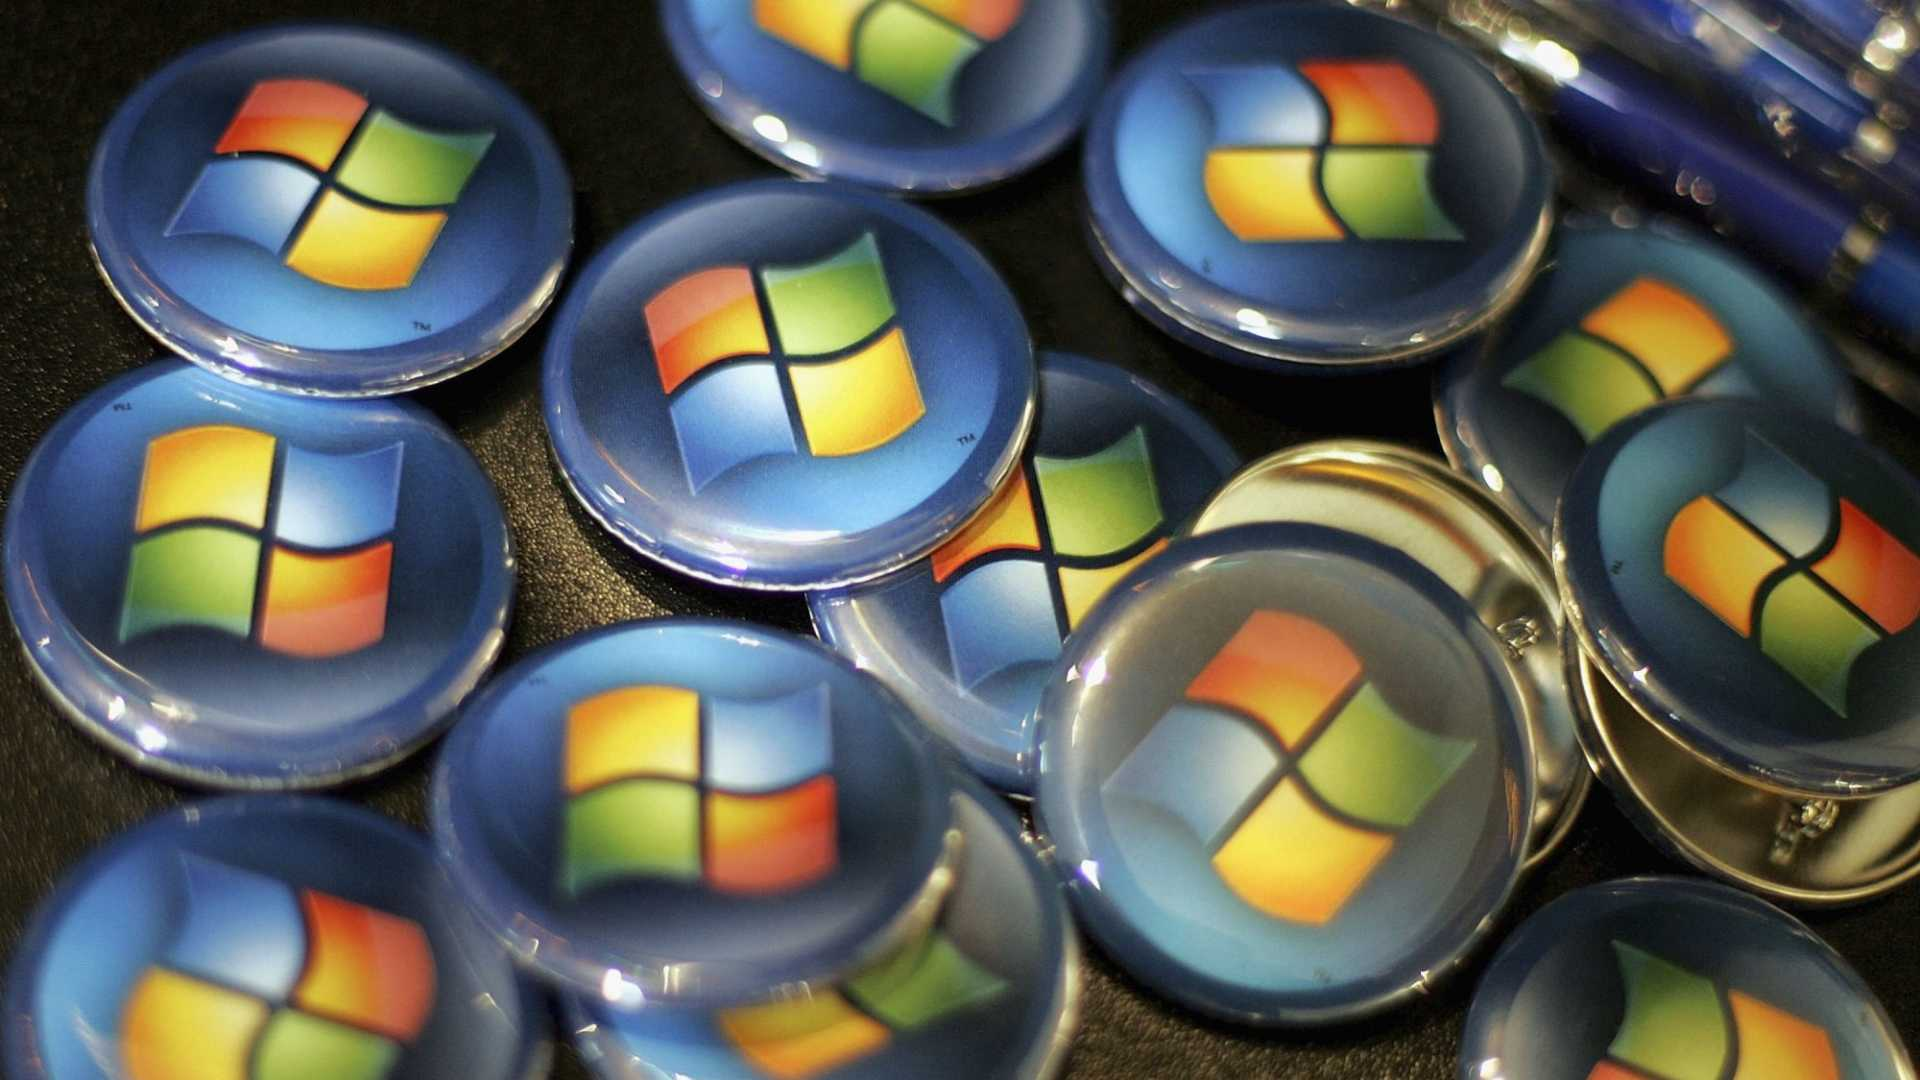 The Clock Is Ticking For Some Microsoft Exchange Users